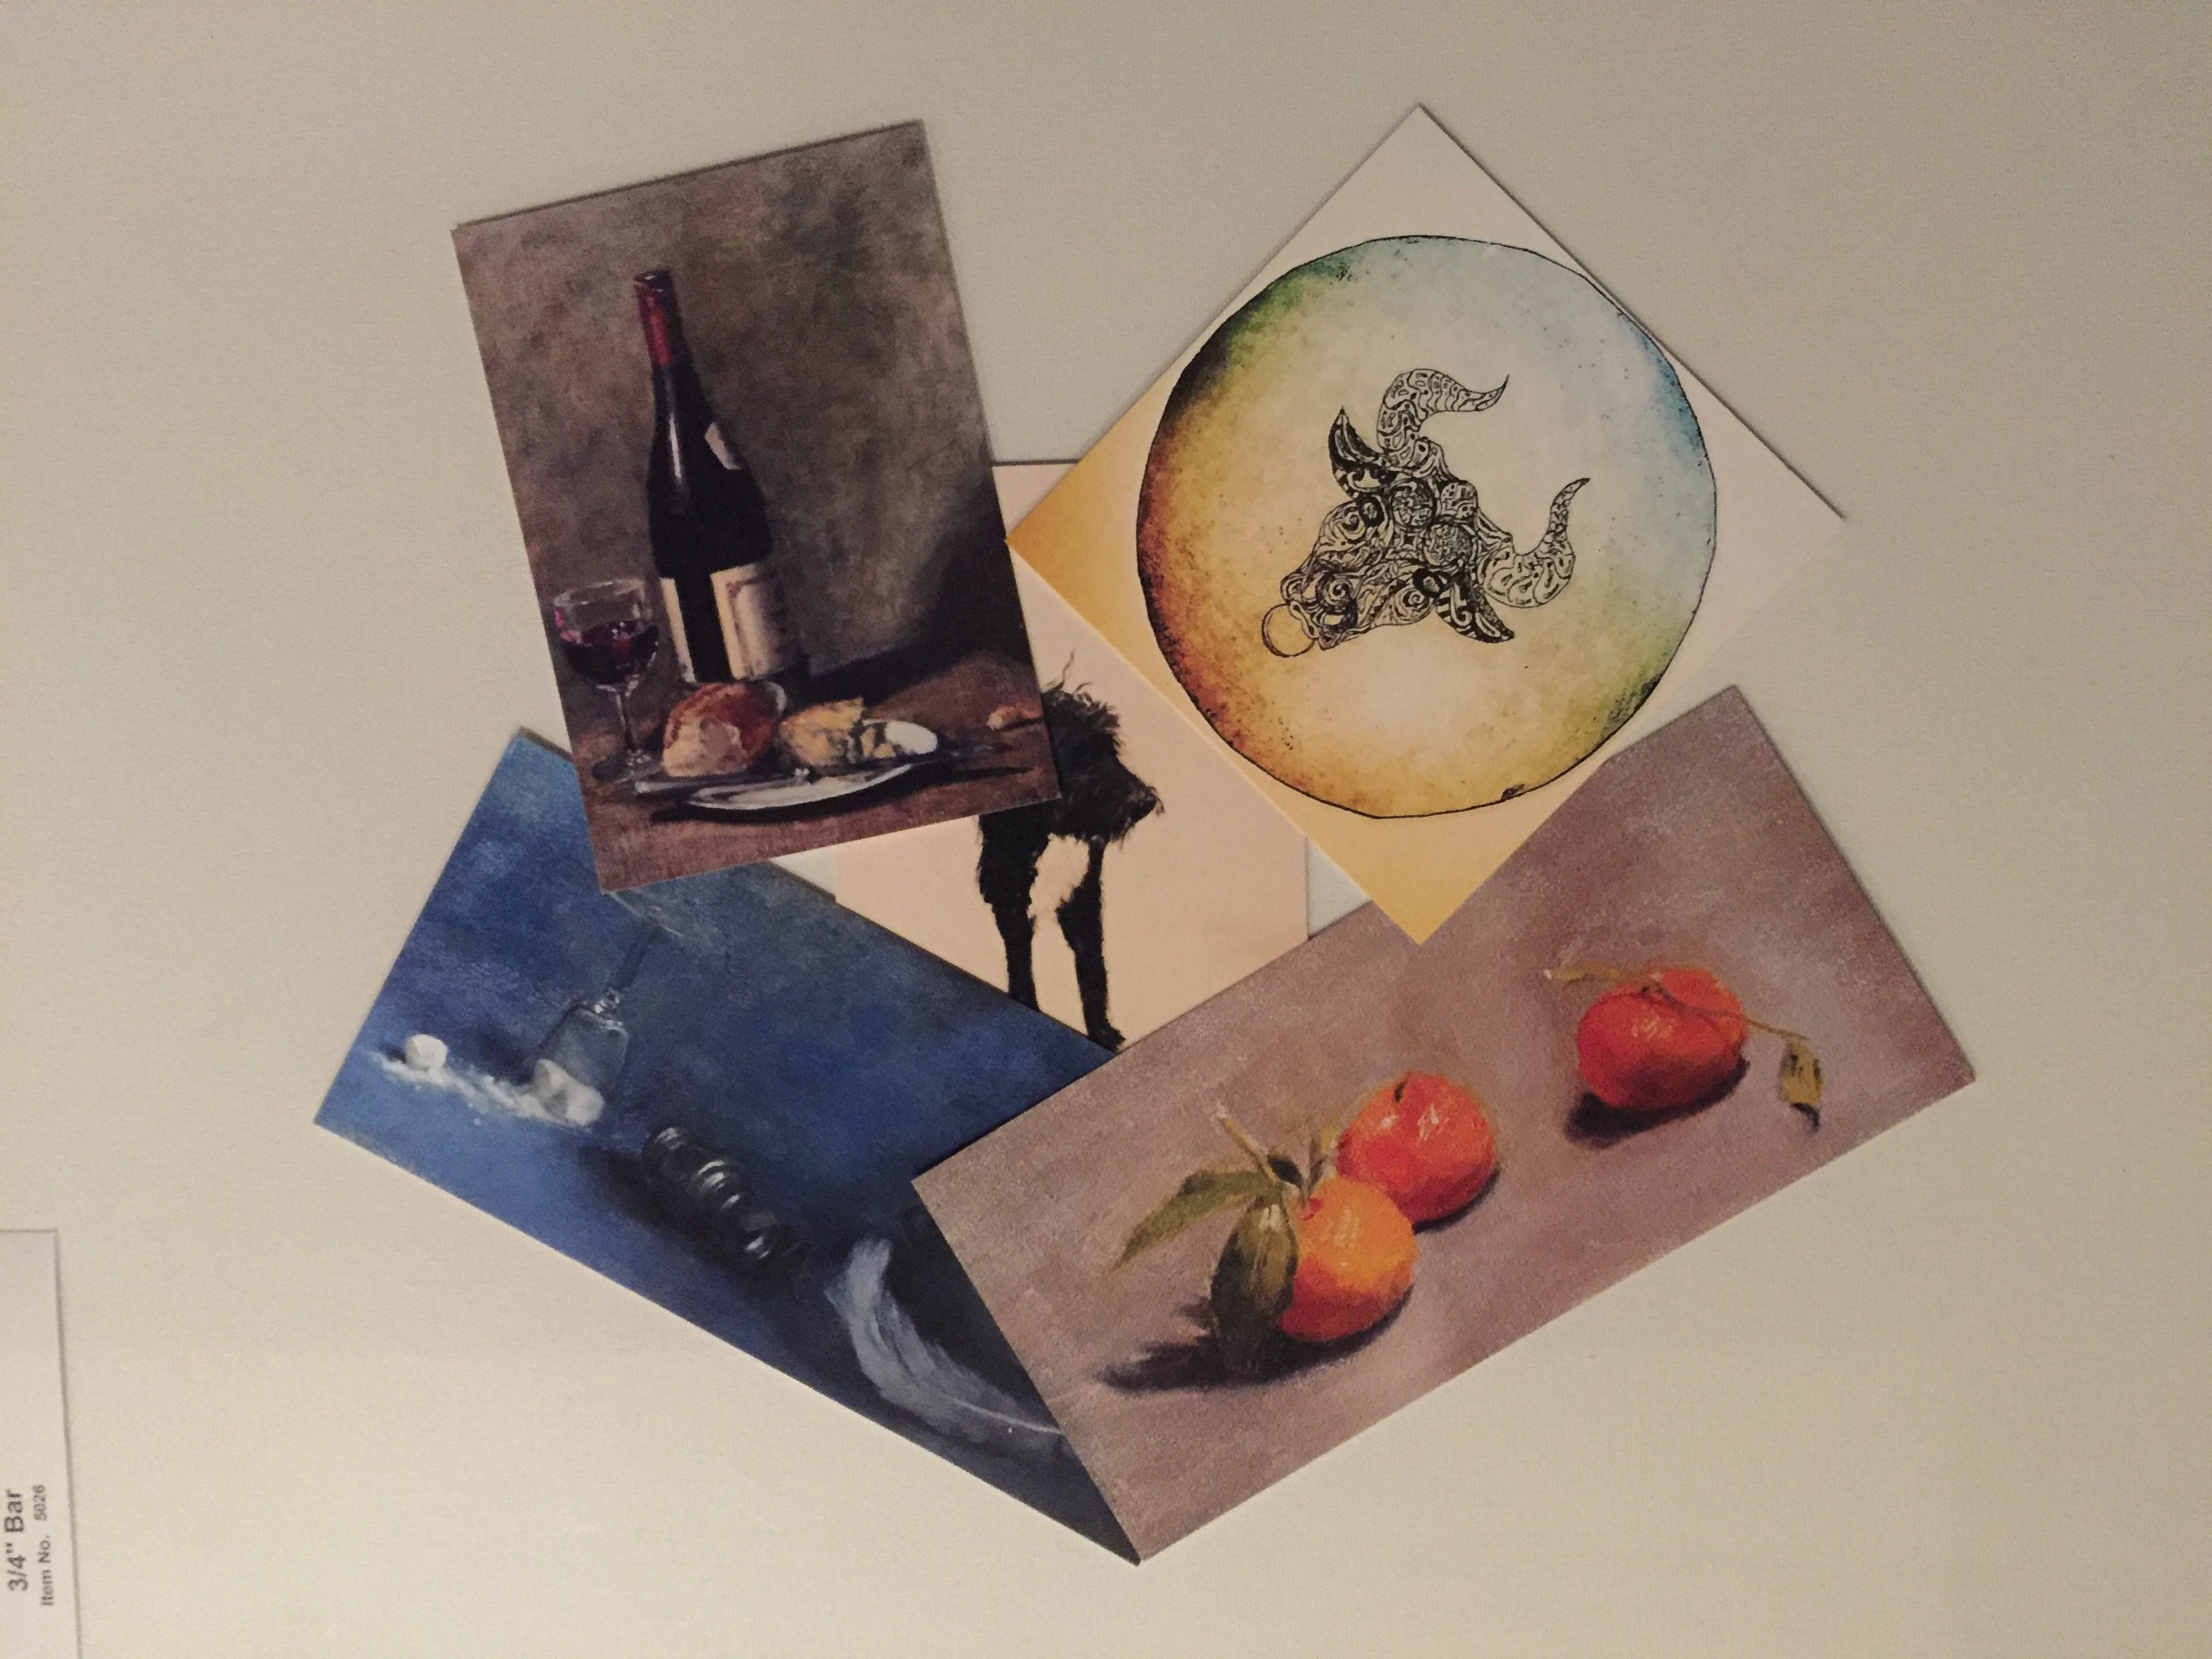 Post Cards for Sale